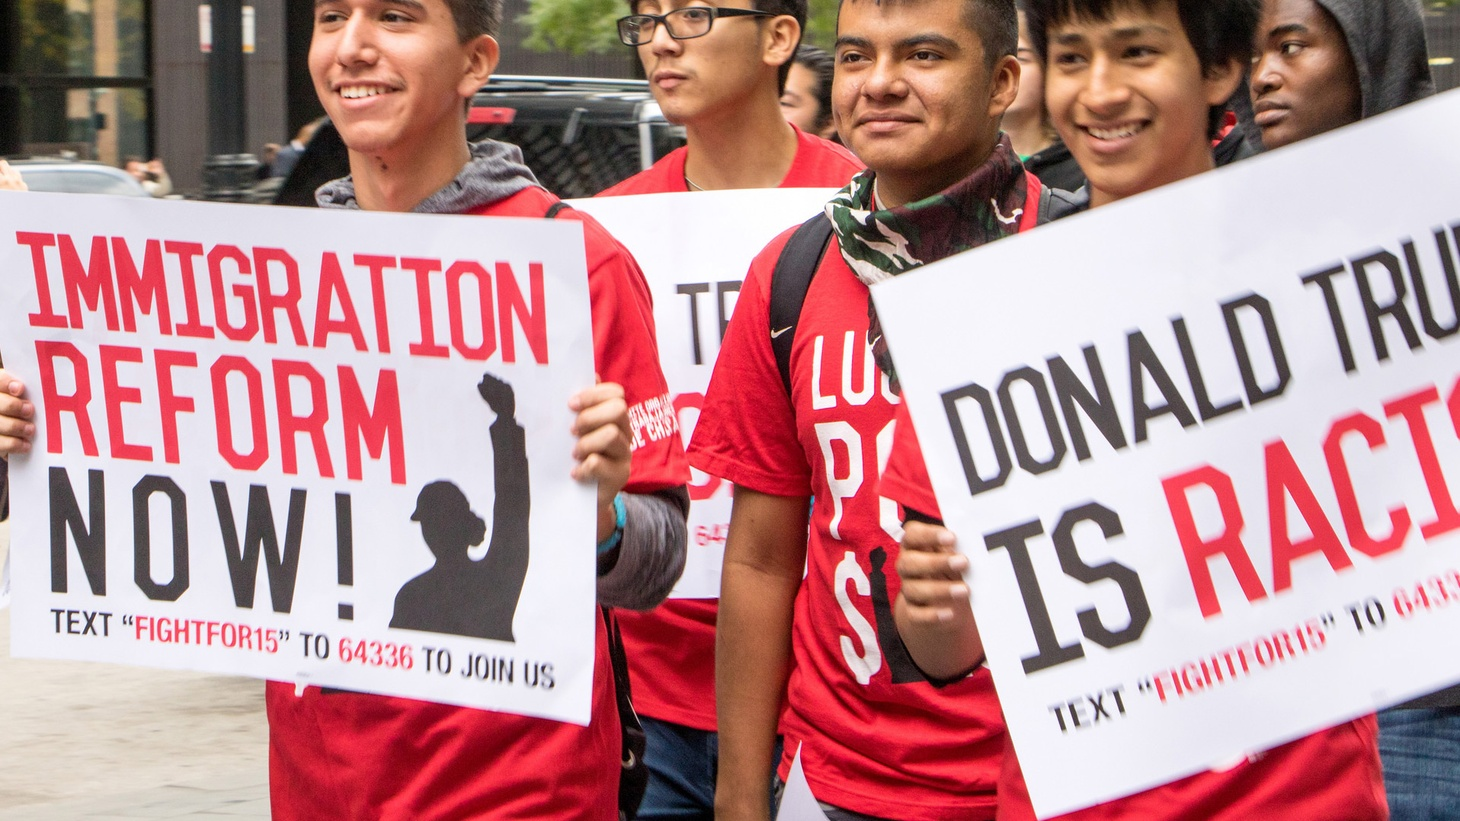 Donald Trump has promised to rescind President Obama's Deferred Action for Childhood Arrivals program, which gives temporary legal status to so-called Dreamers. Trump also cited the Eisenhower era's Operation Wetback as a model for his deportation plans. Civil rights groups hold up that 1950s approach as an example of ethnic profiling.